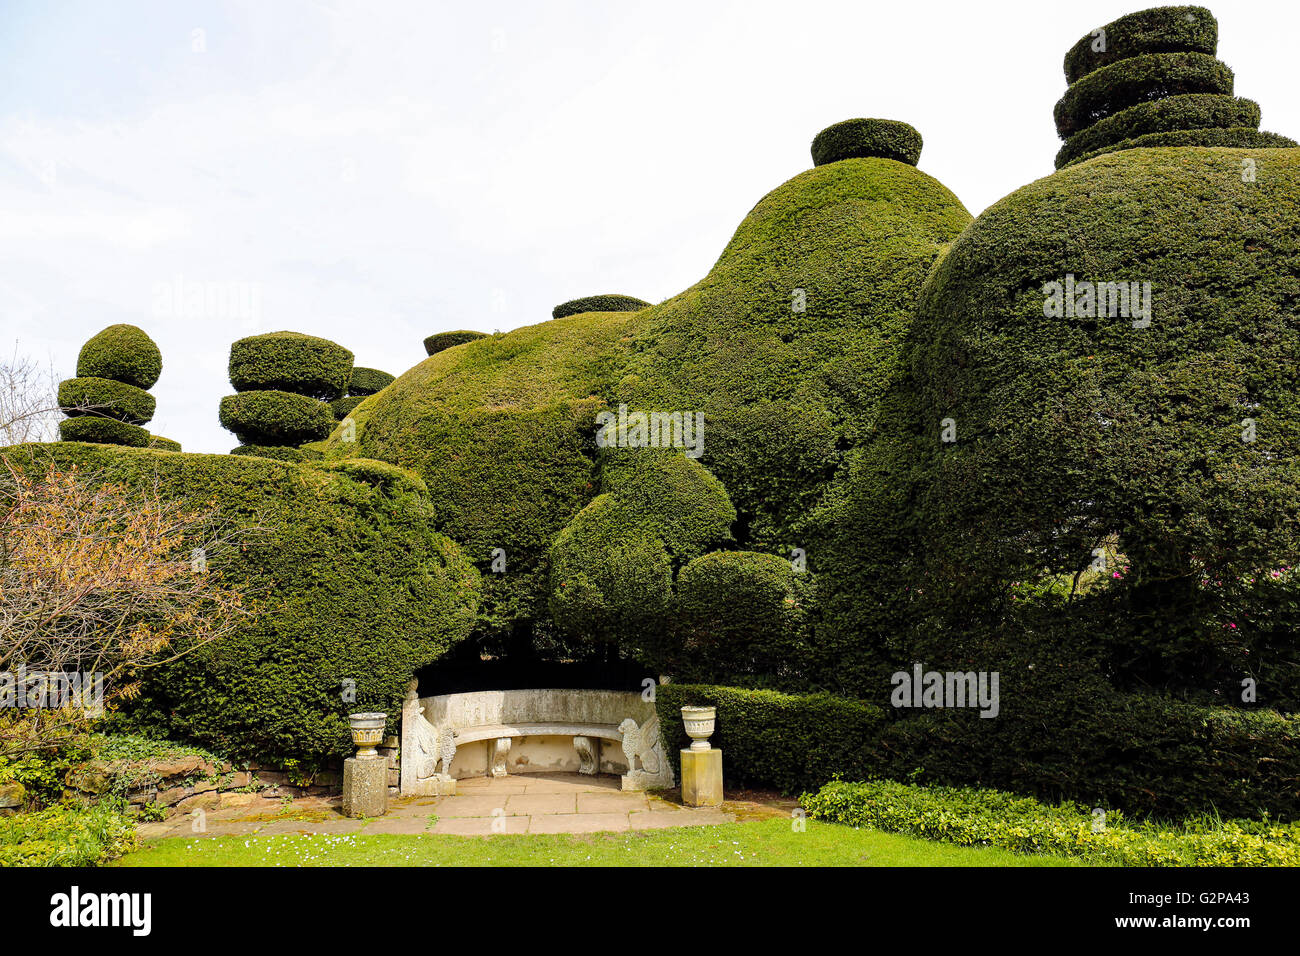 Well manicured Yew trees at - Stock Image